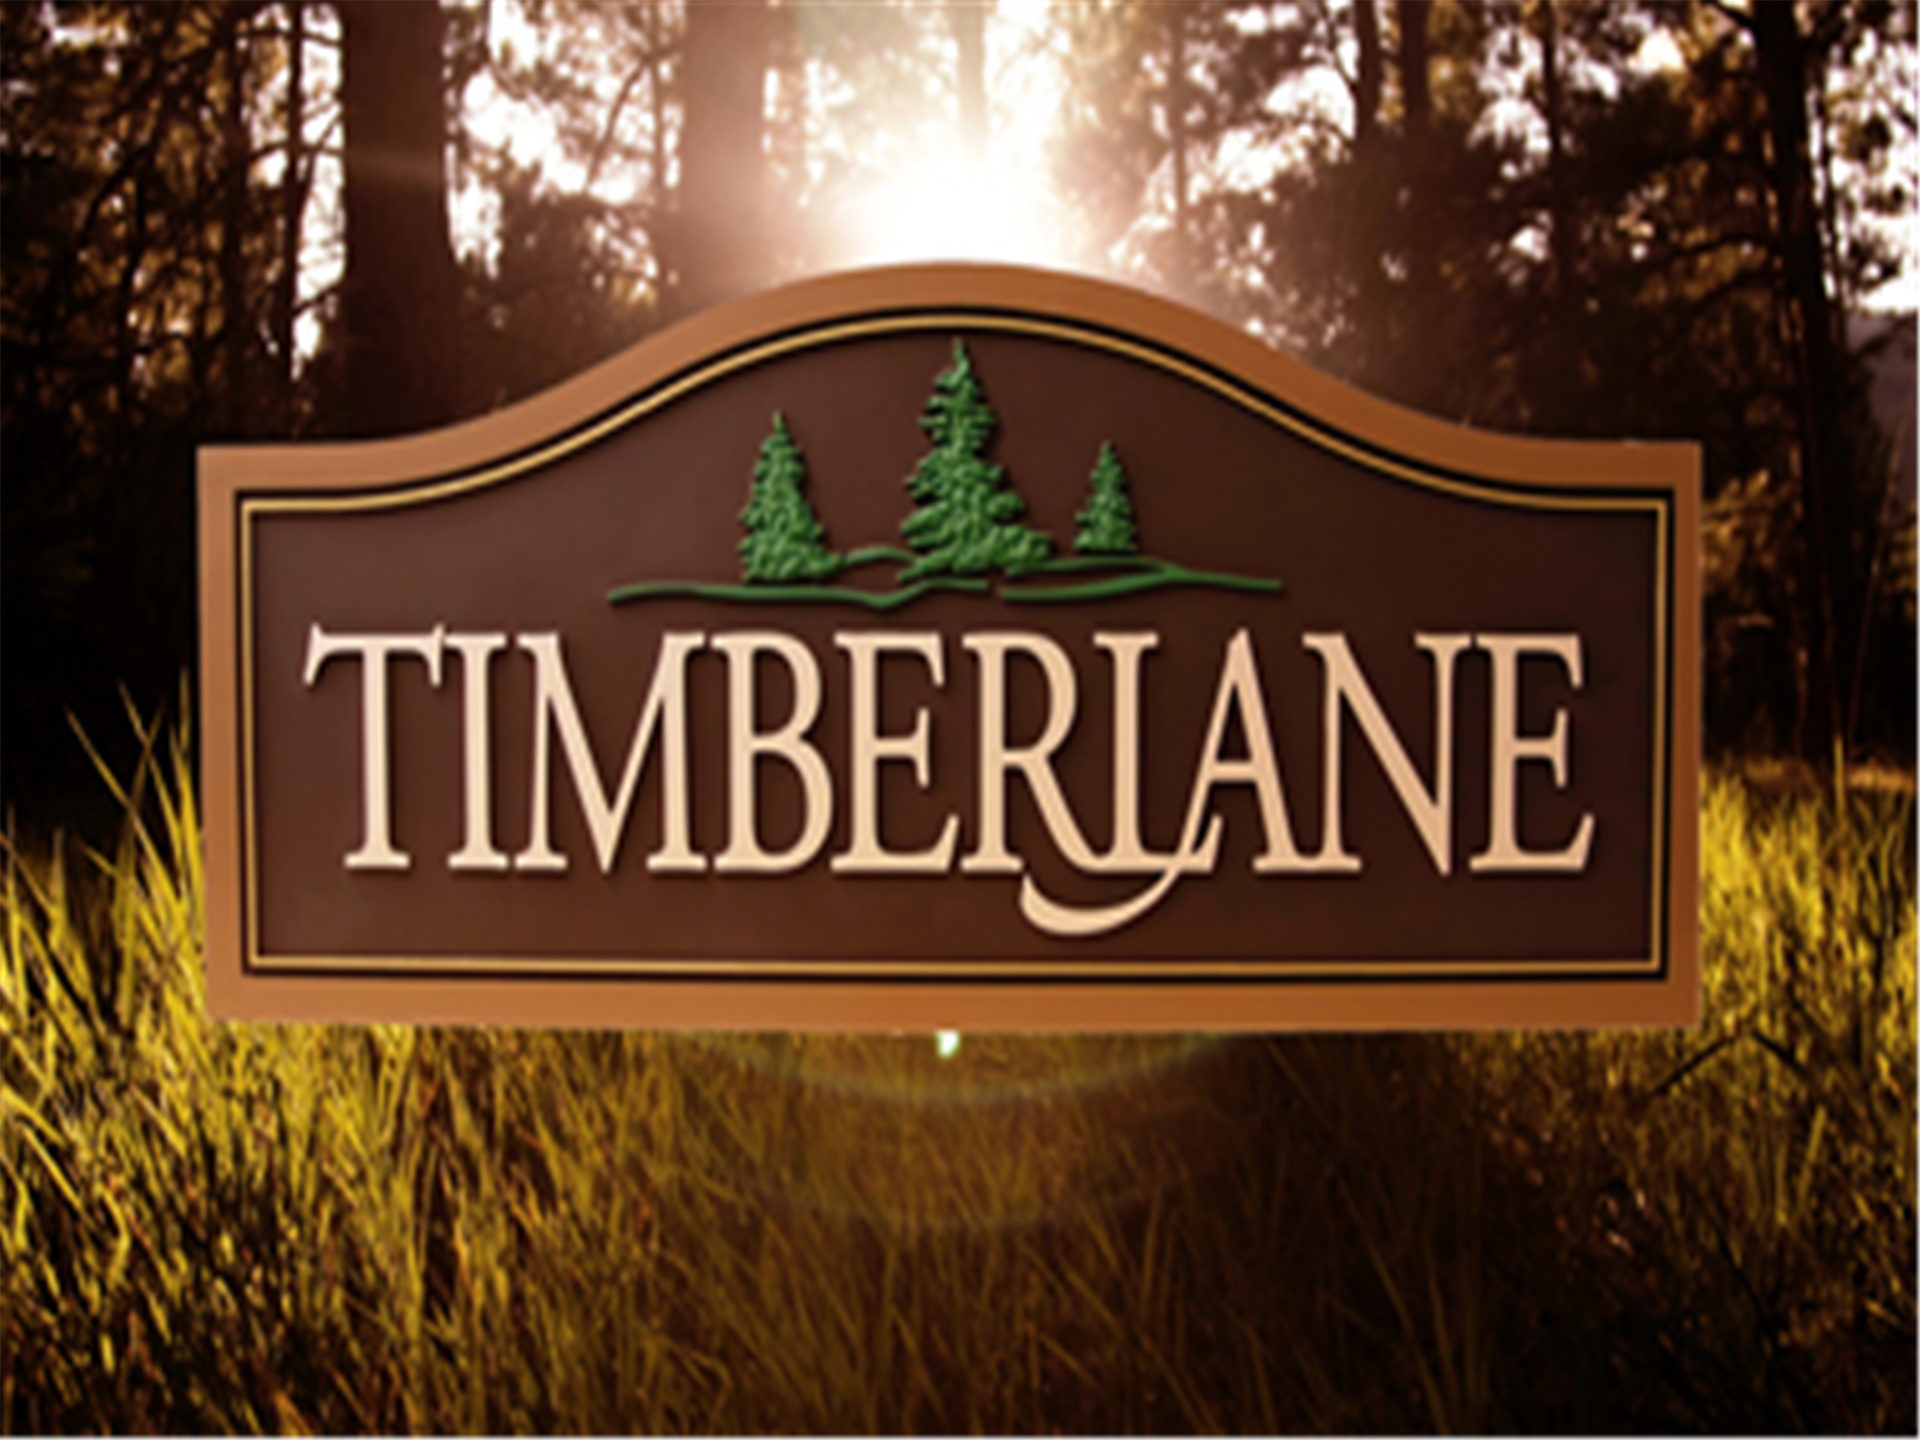 """grass and trees background with a rectangular sign in the middle with 3 mini trees and the word """"TIMBERLANE"""" below"""